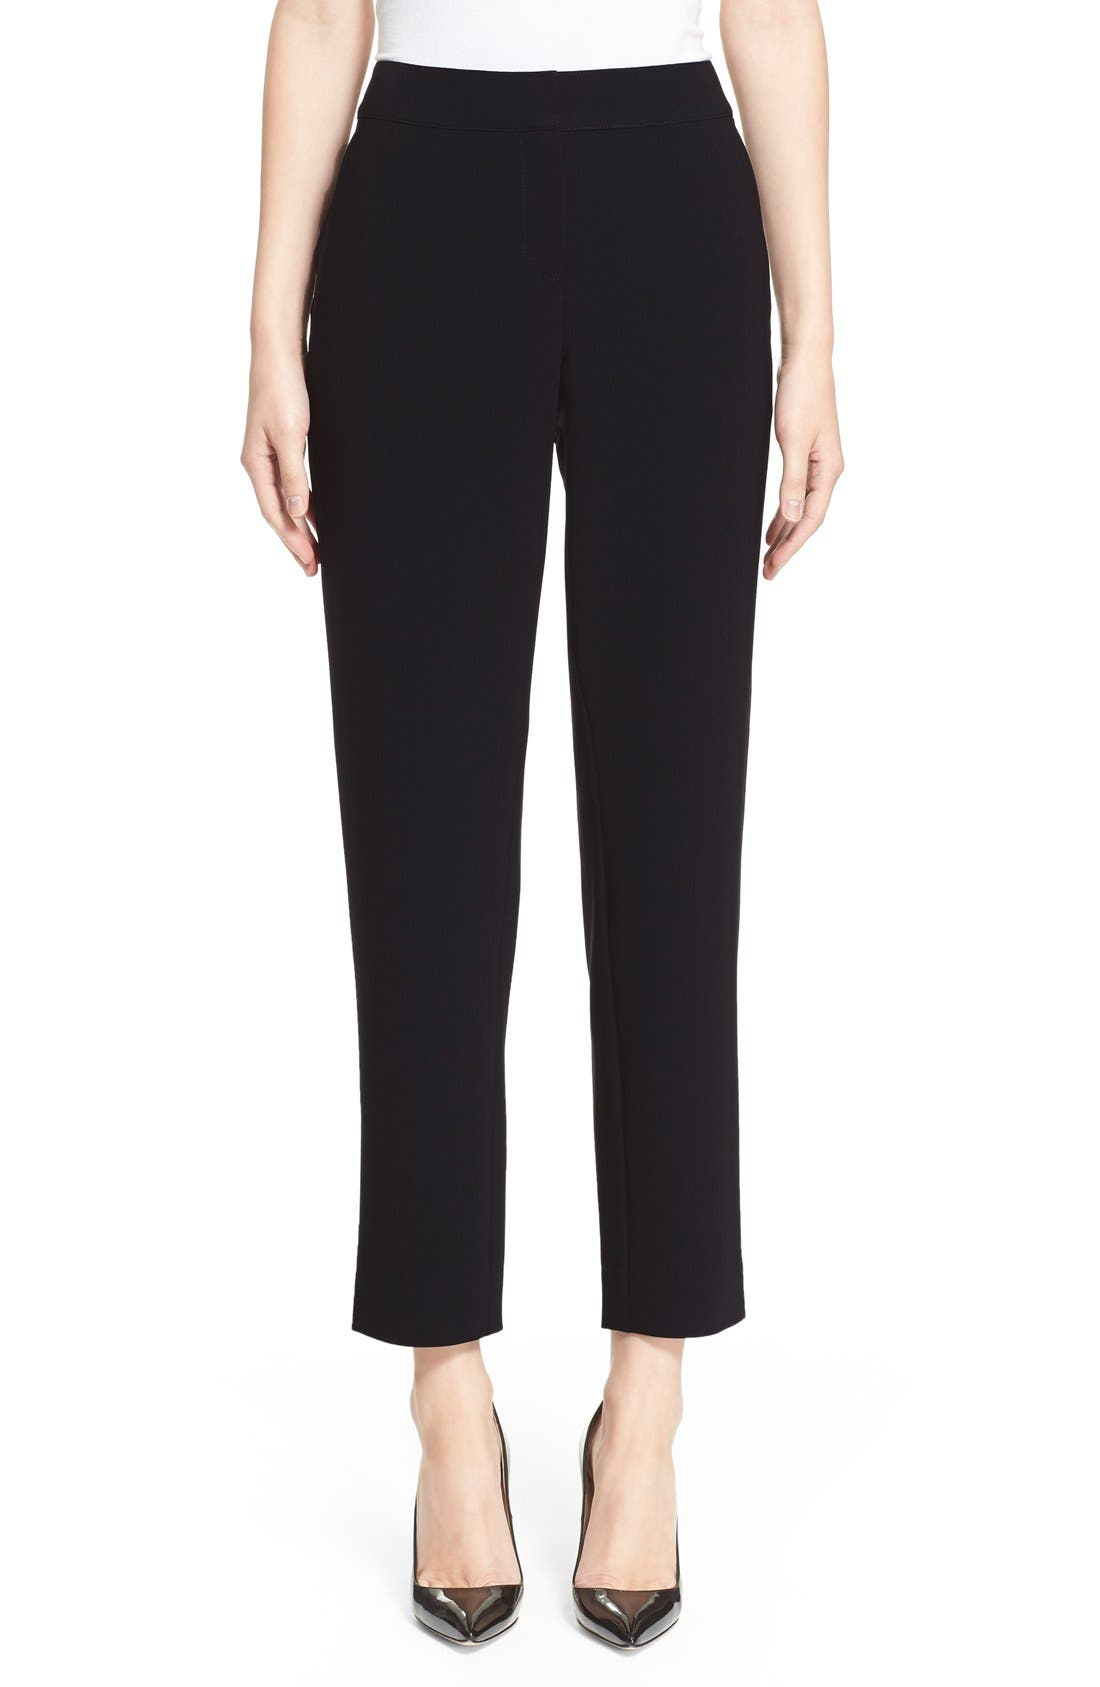 St. John Collection 'Emma' Crop Crepe Marocain Pants